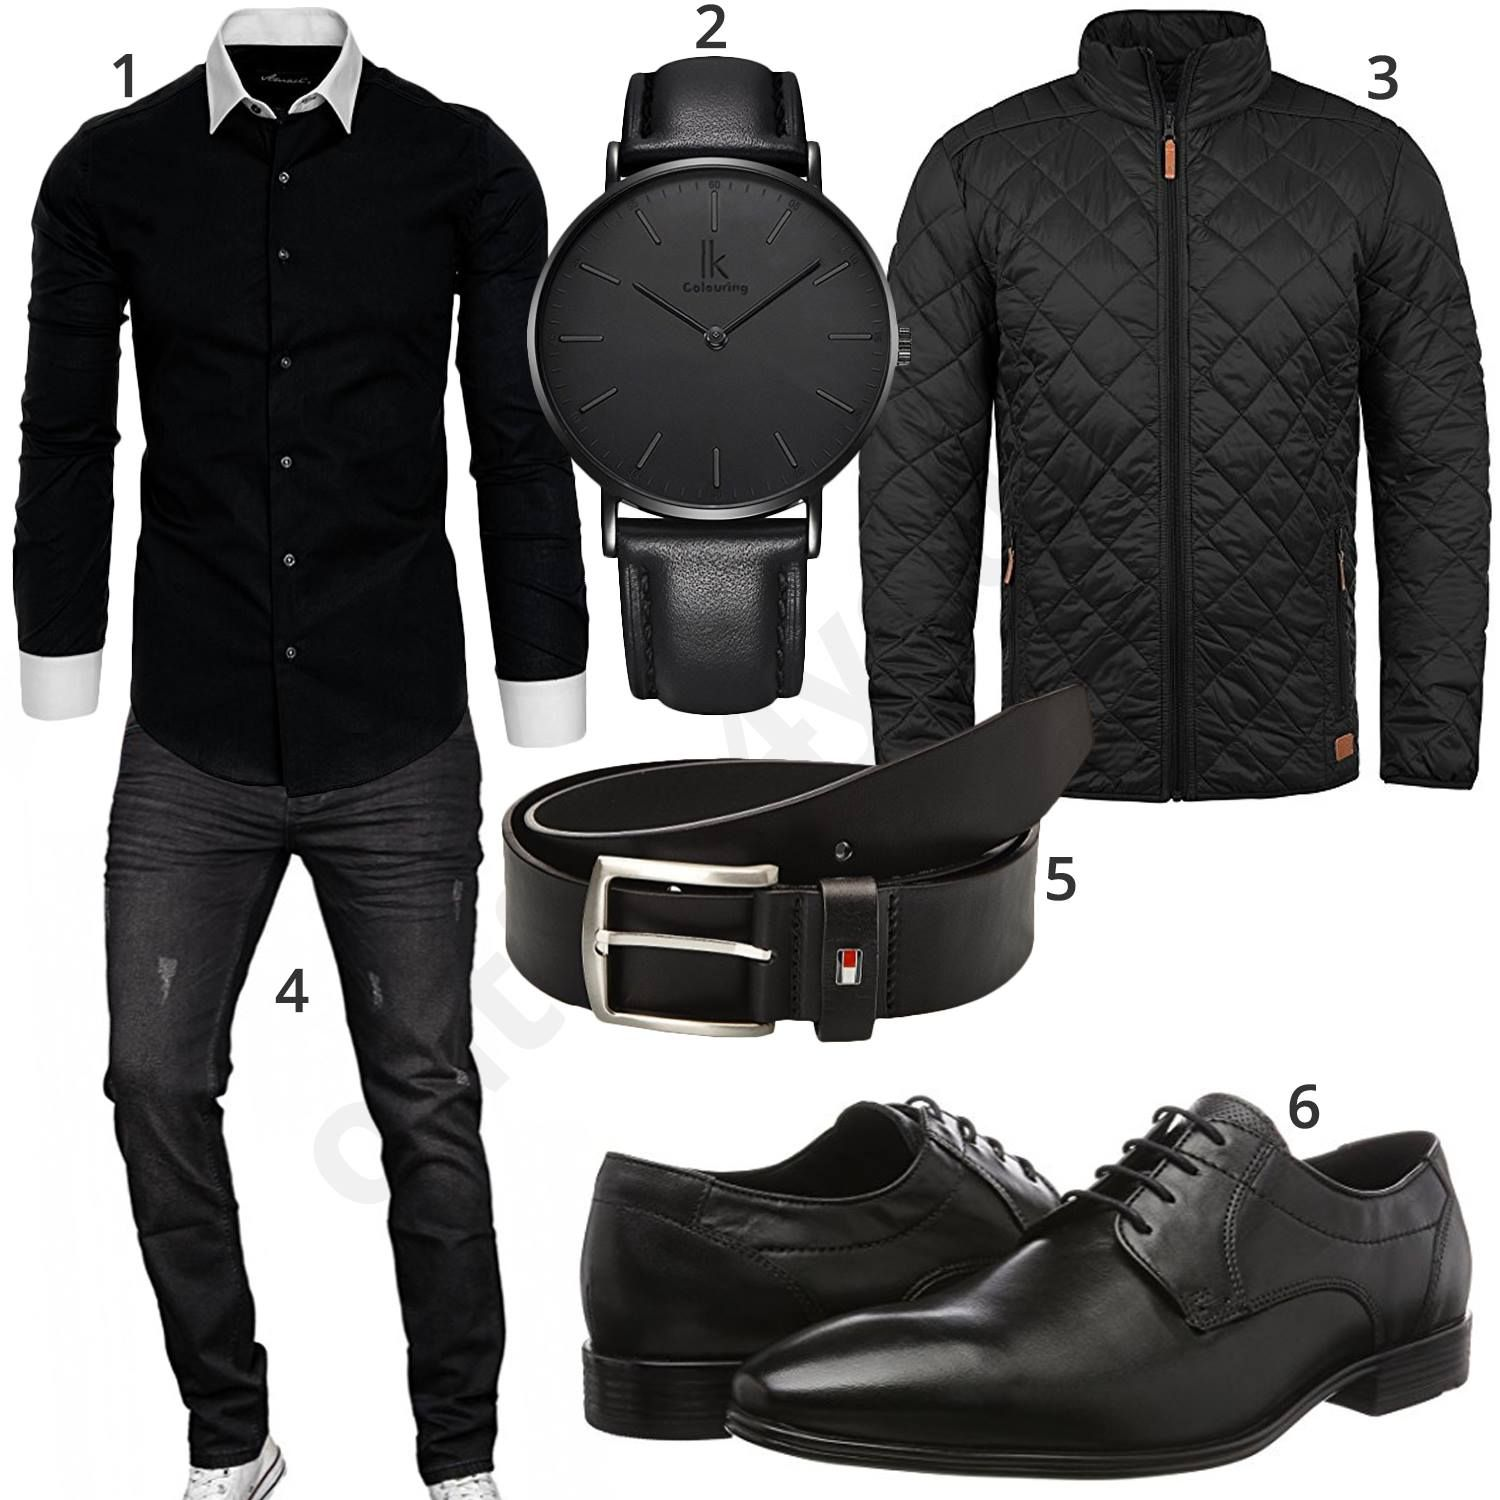 schwarzes business outfit mit hemd jeans und schuhen. Black Bedroom Furniture Sets. Home Design Ideas